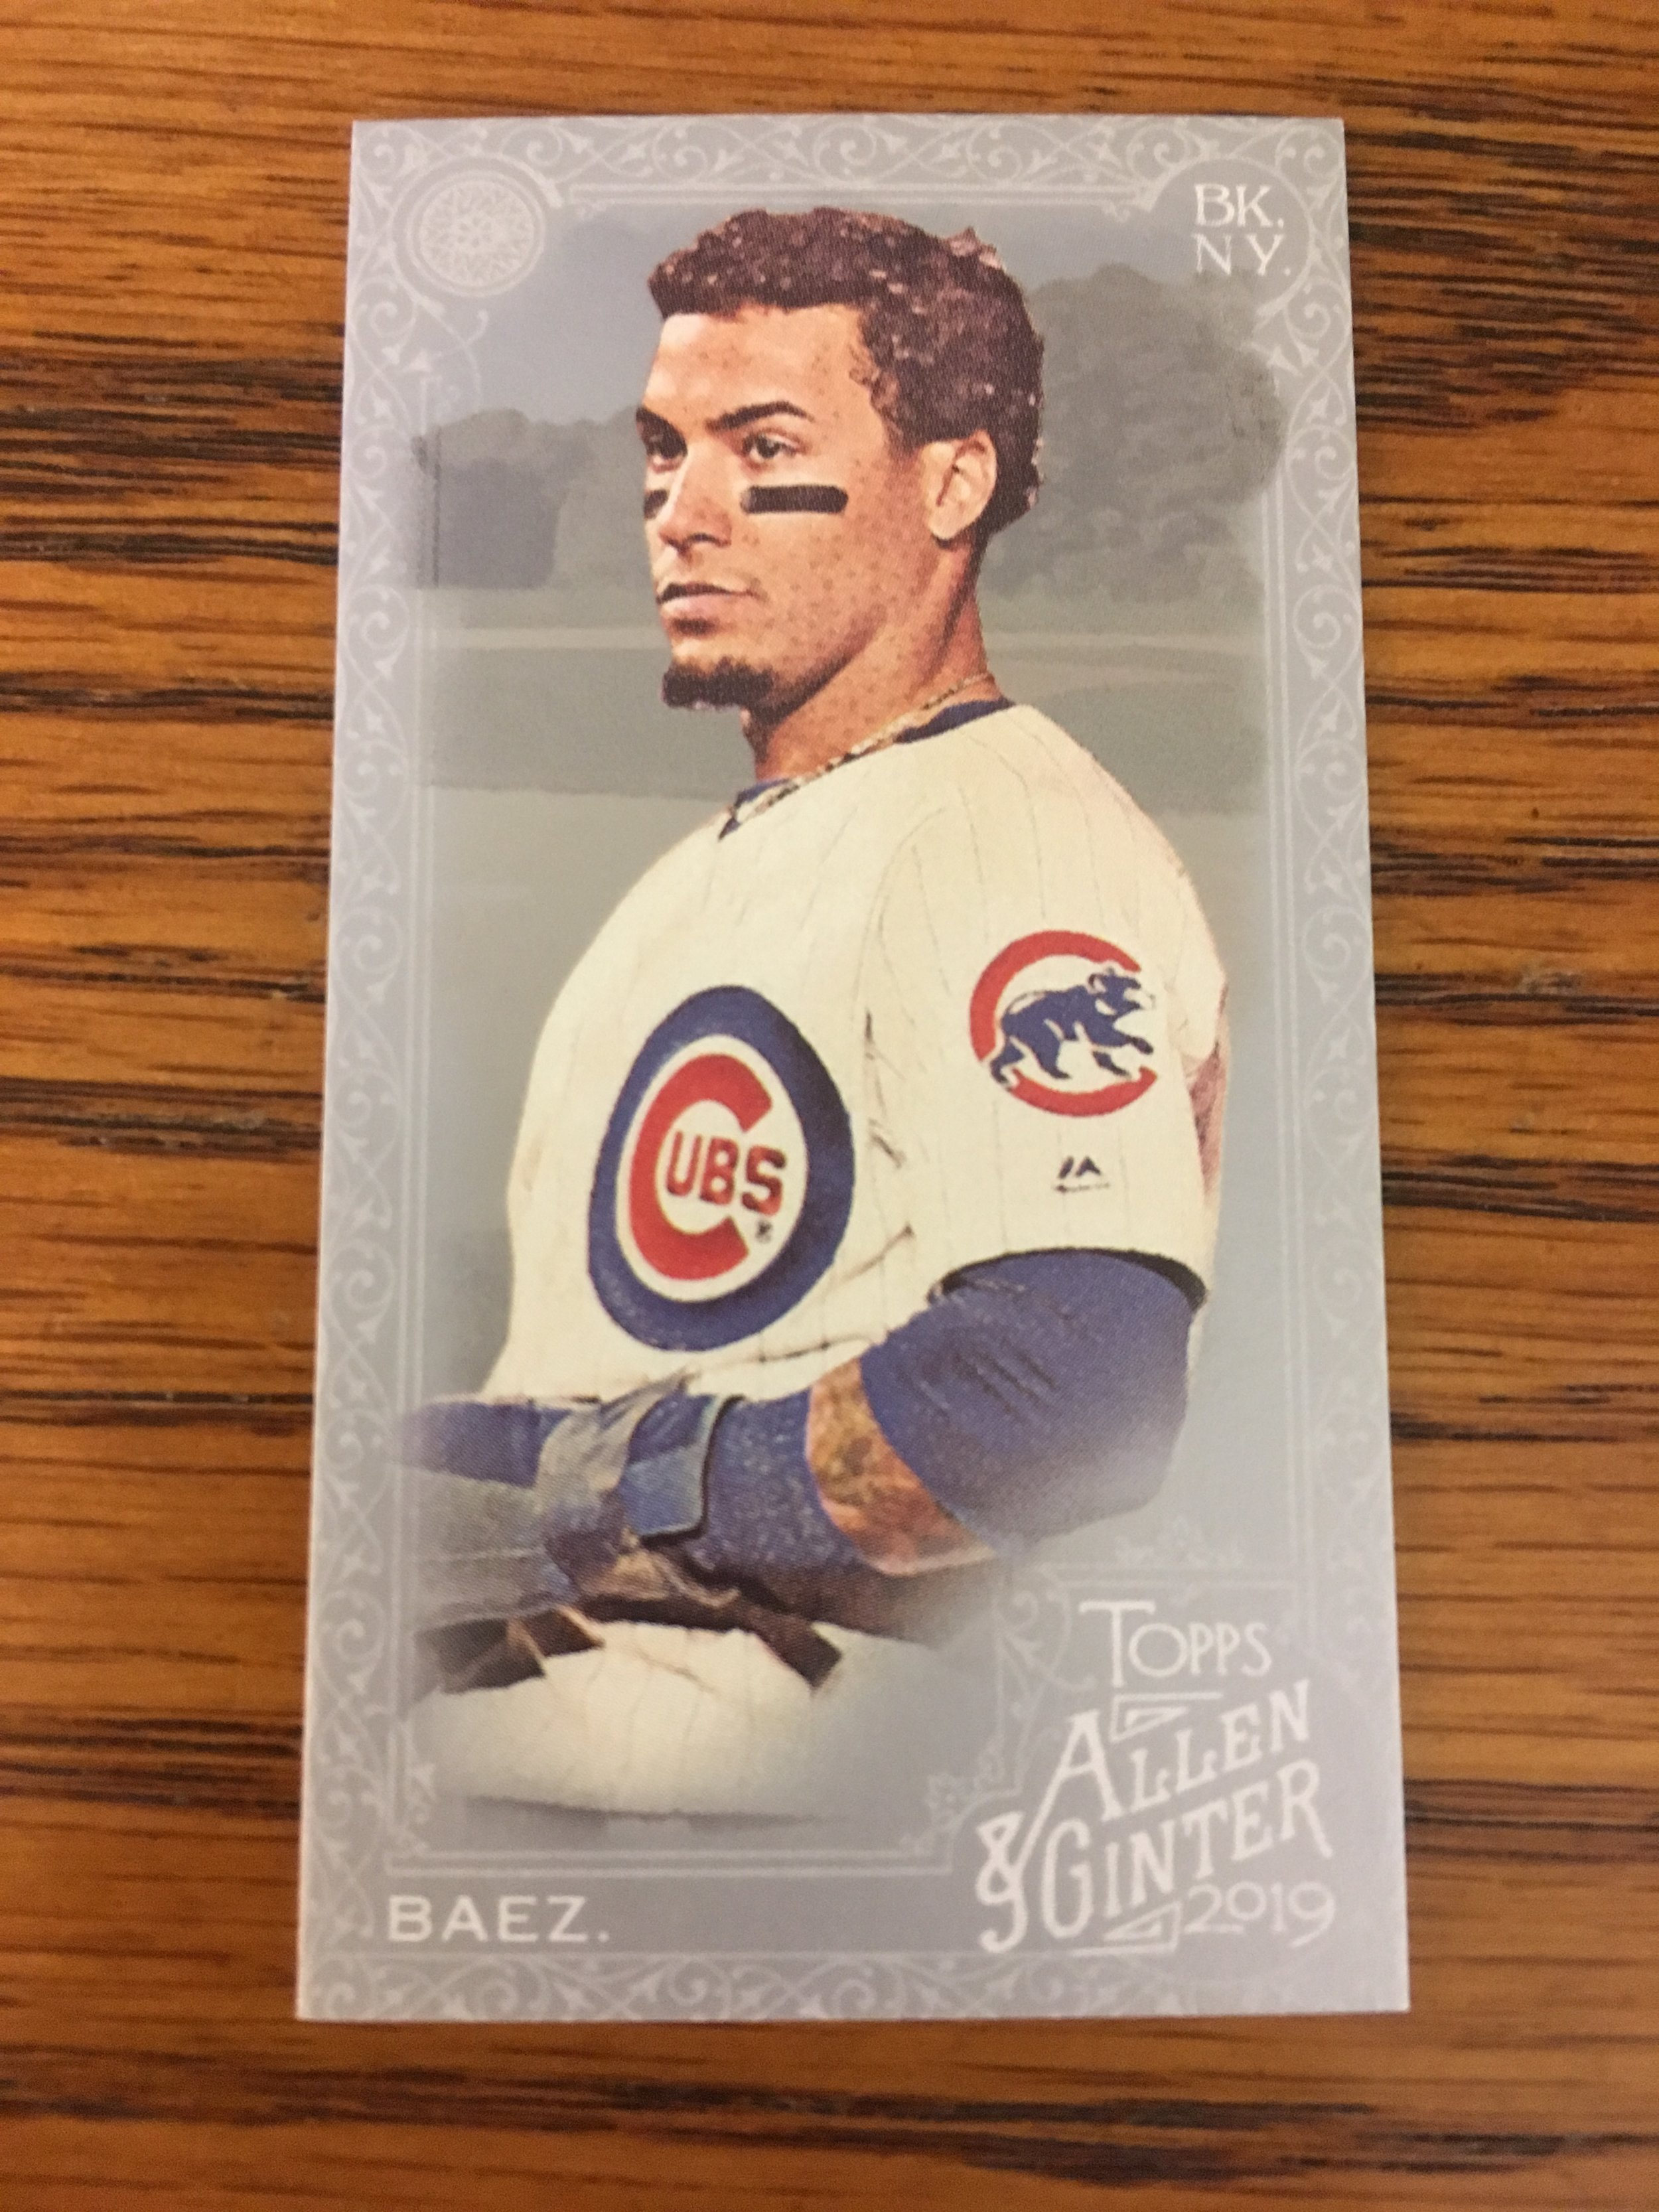 This Javy Baez 1/1 was one of my pulls!